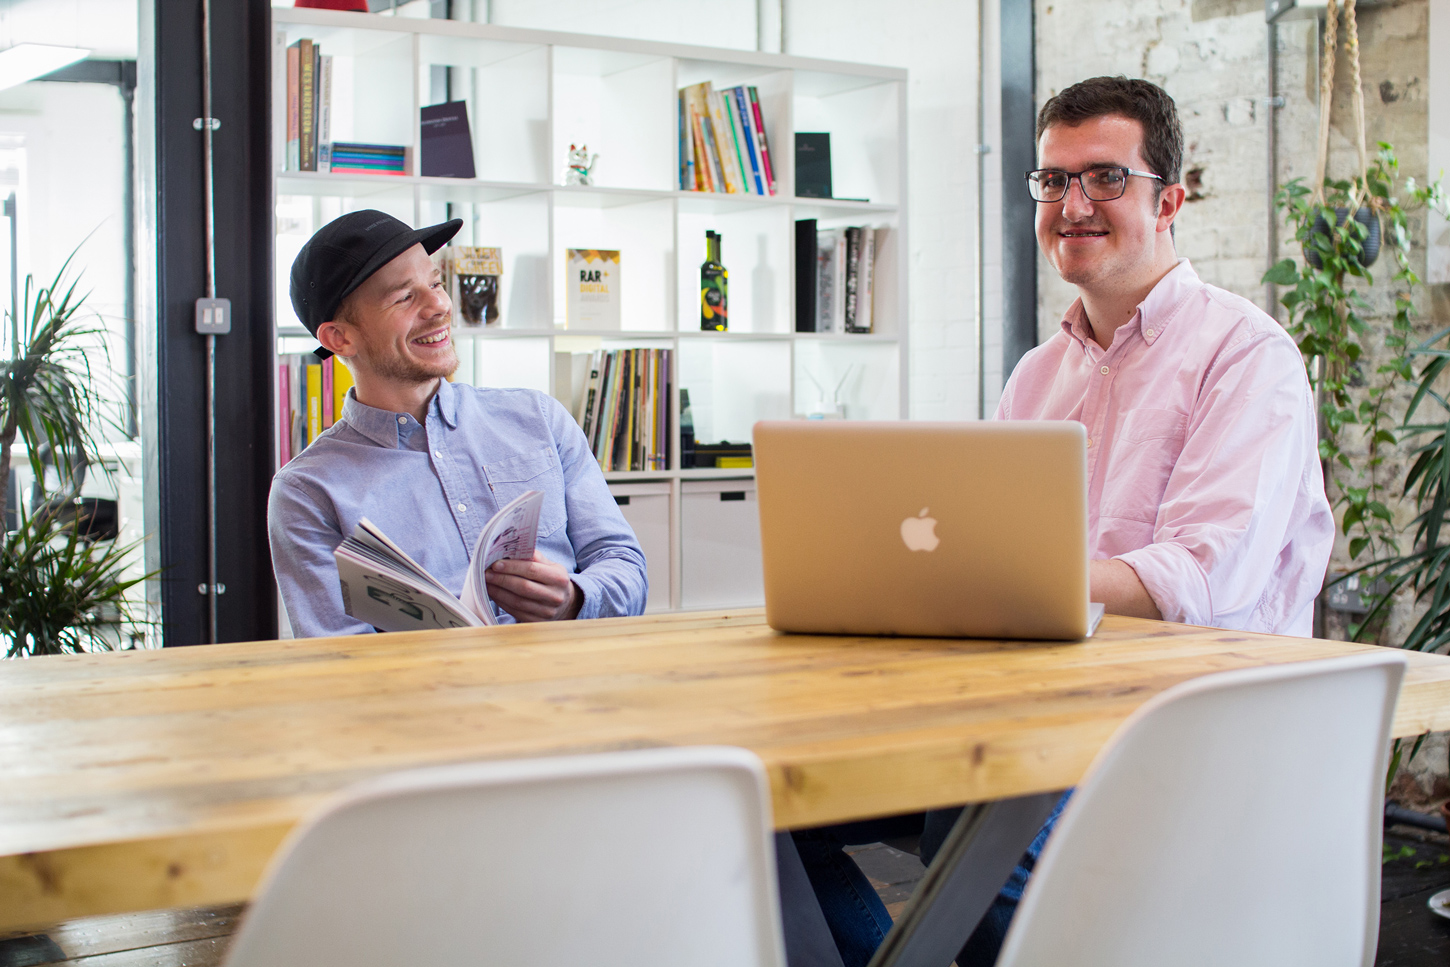 Salad Continues to Grow with Hire of Designer and Web Developer